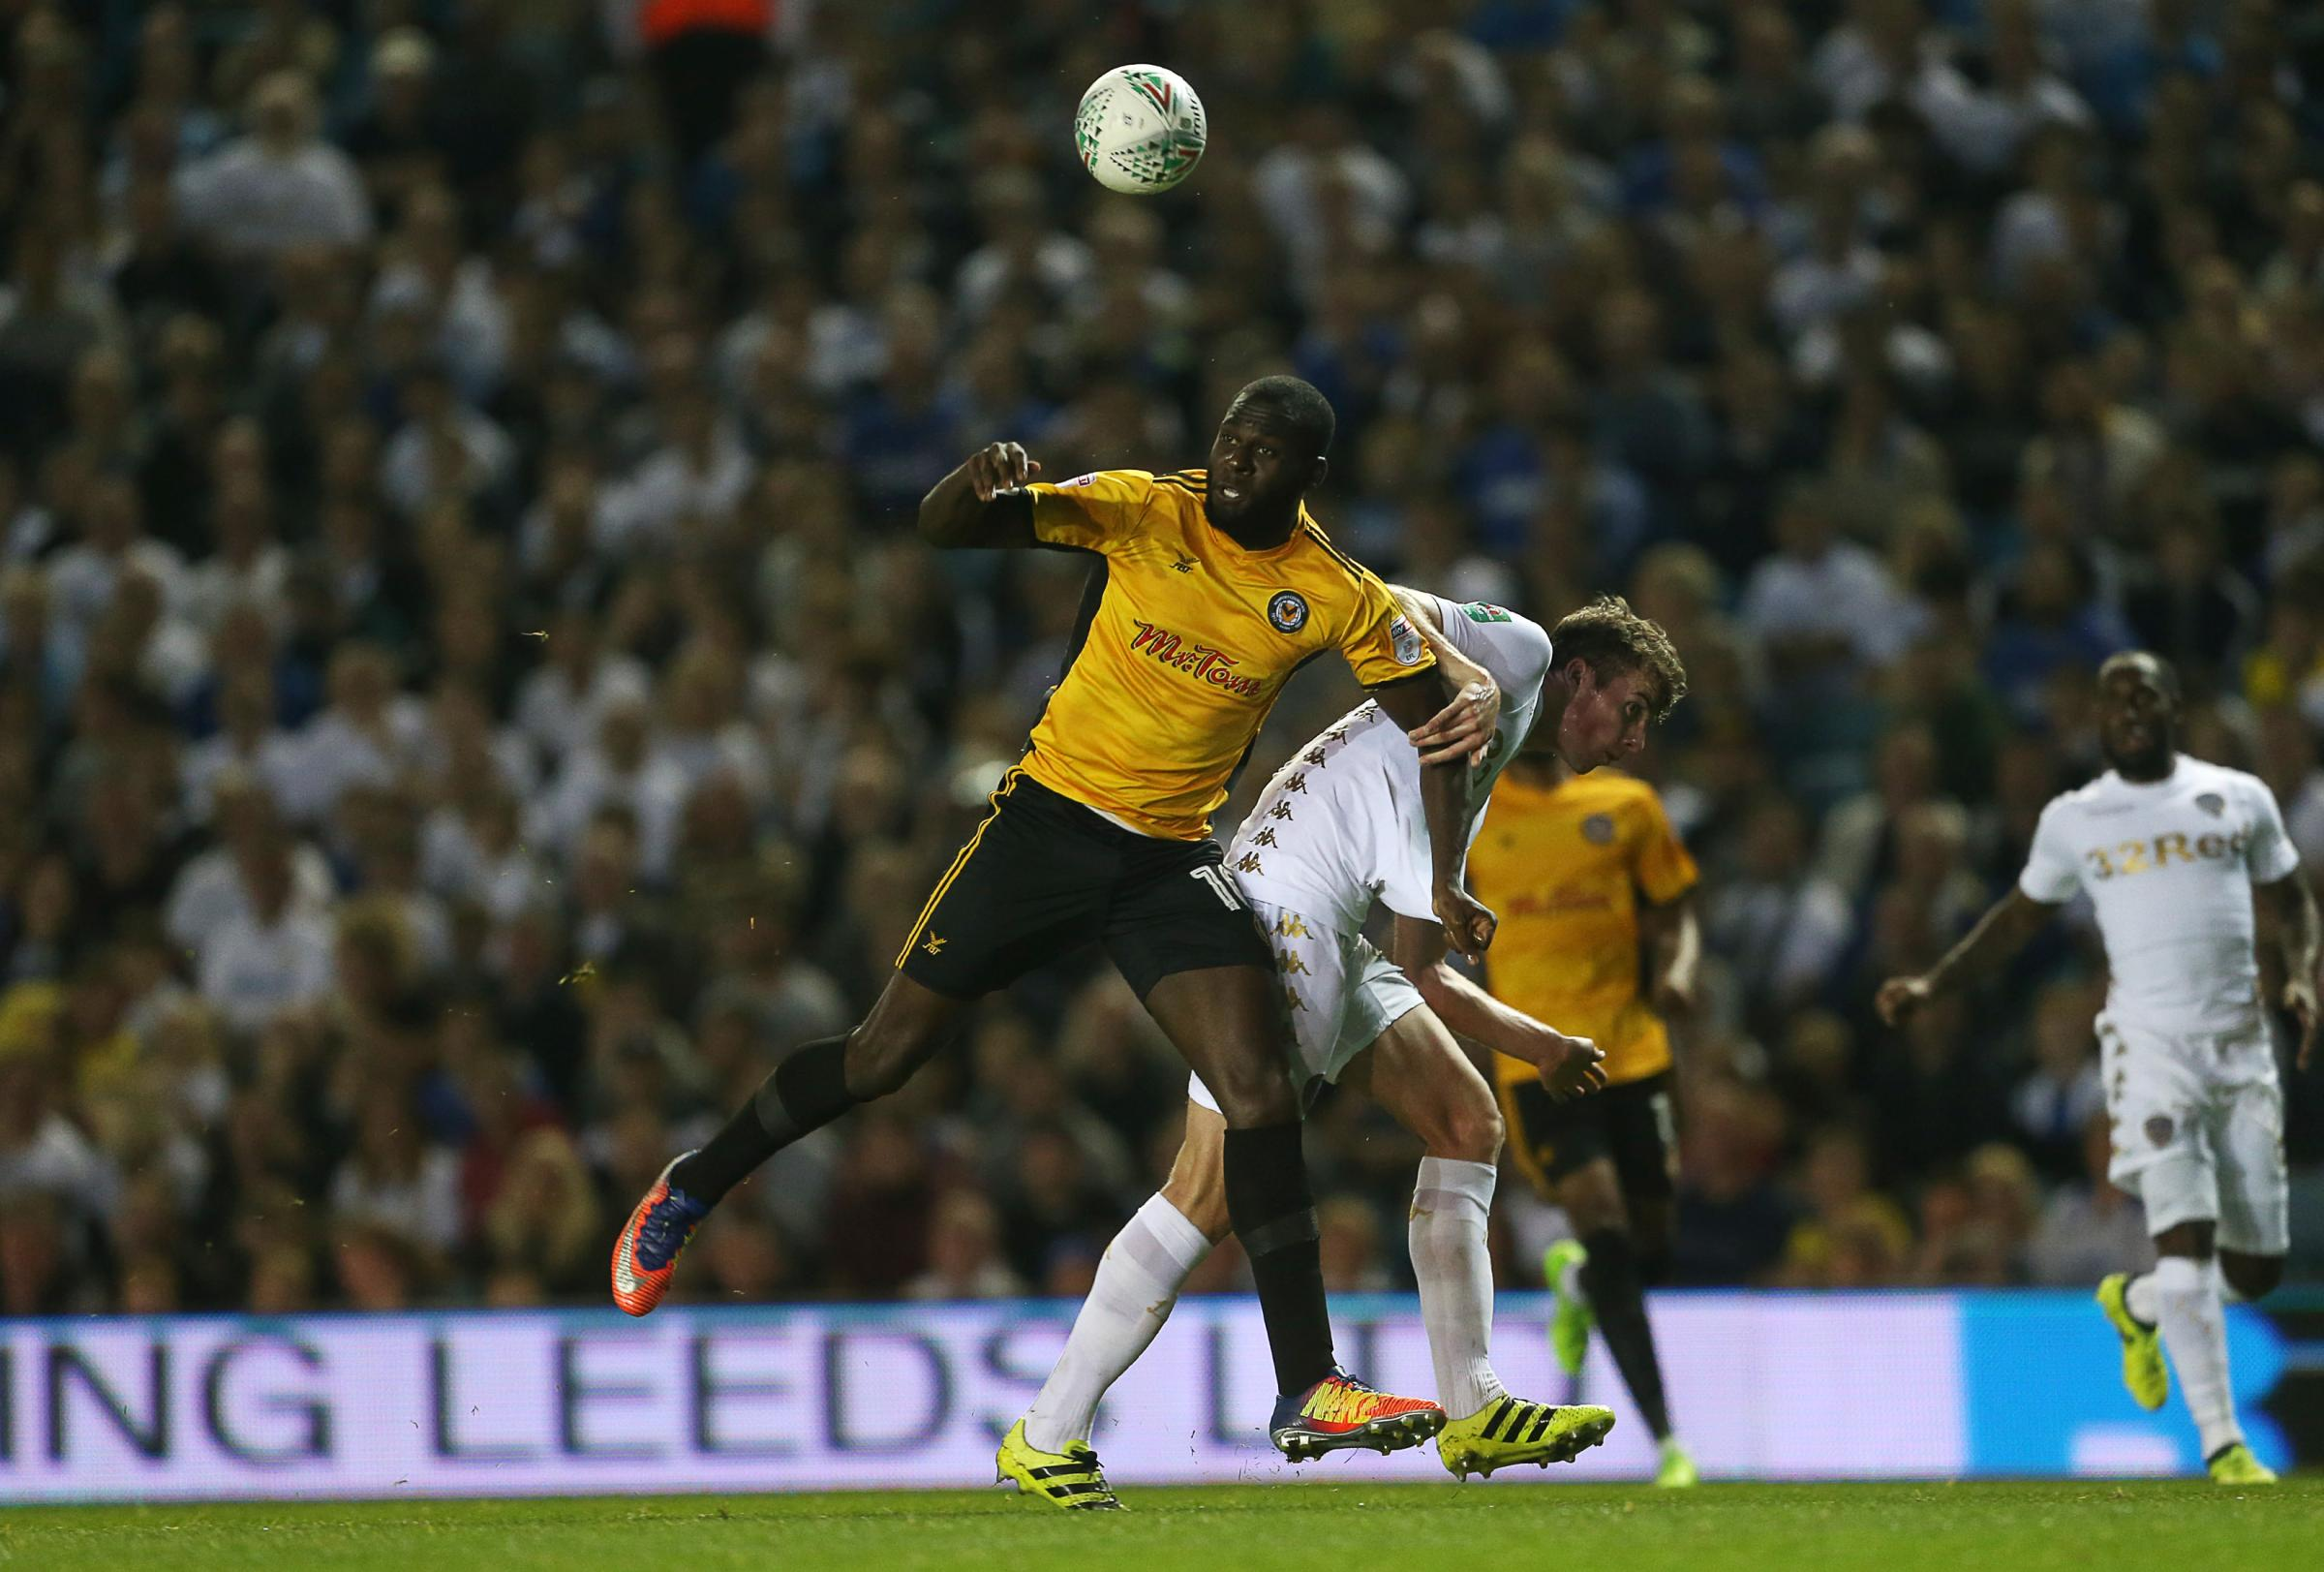 REMATCH: Newport County and Frank Nouble will take on Leeds United for a second time this season. Pictures: Huw Evans Agency